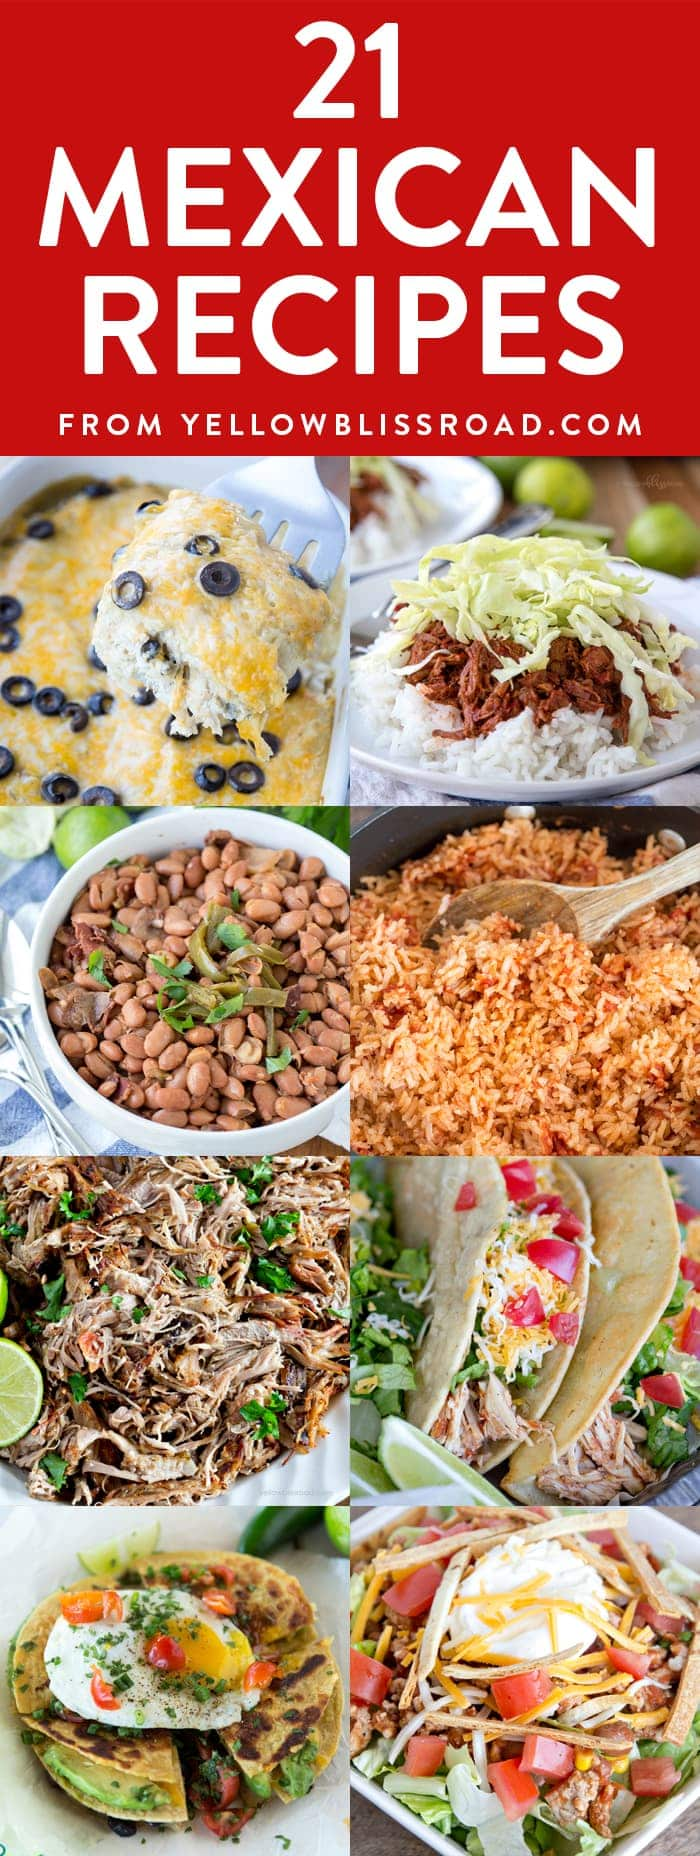 21 Mexican Recipes - from Authentic Classic dishes, to fresh new takes on traditional recipes. Perfect for Cinco de Mayo!